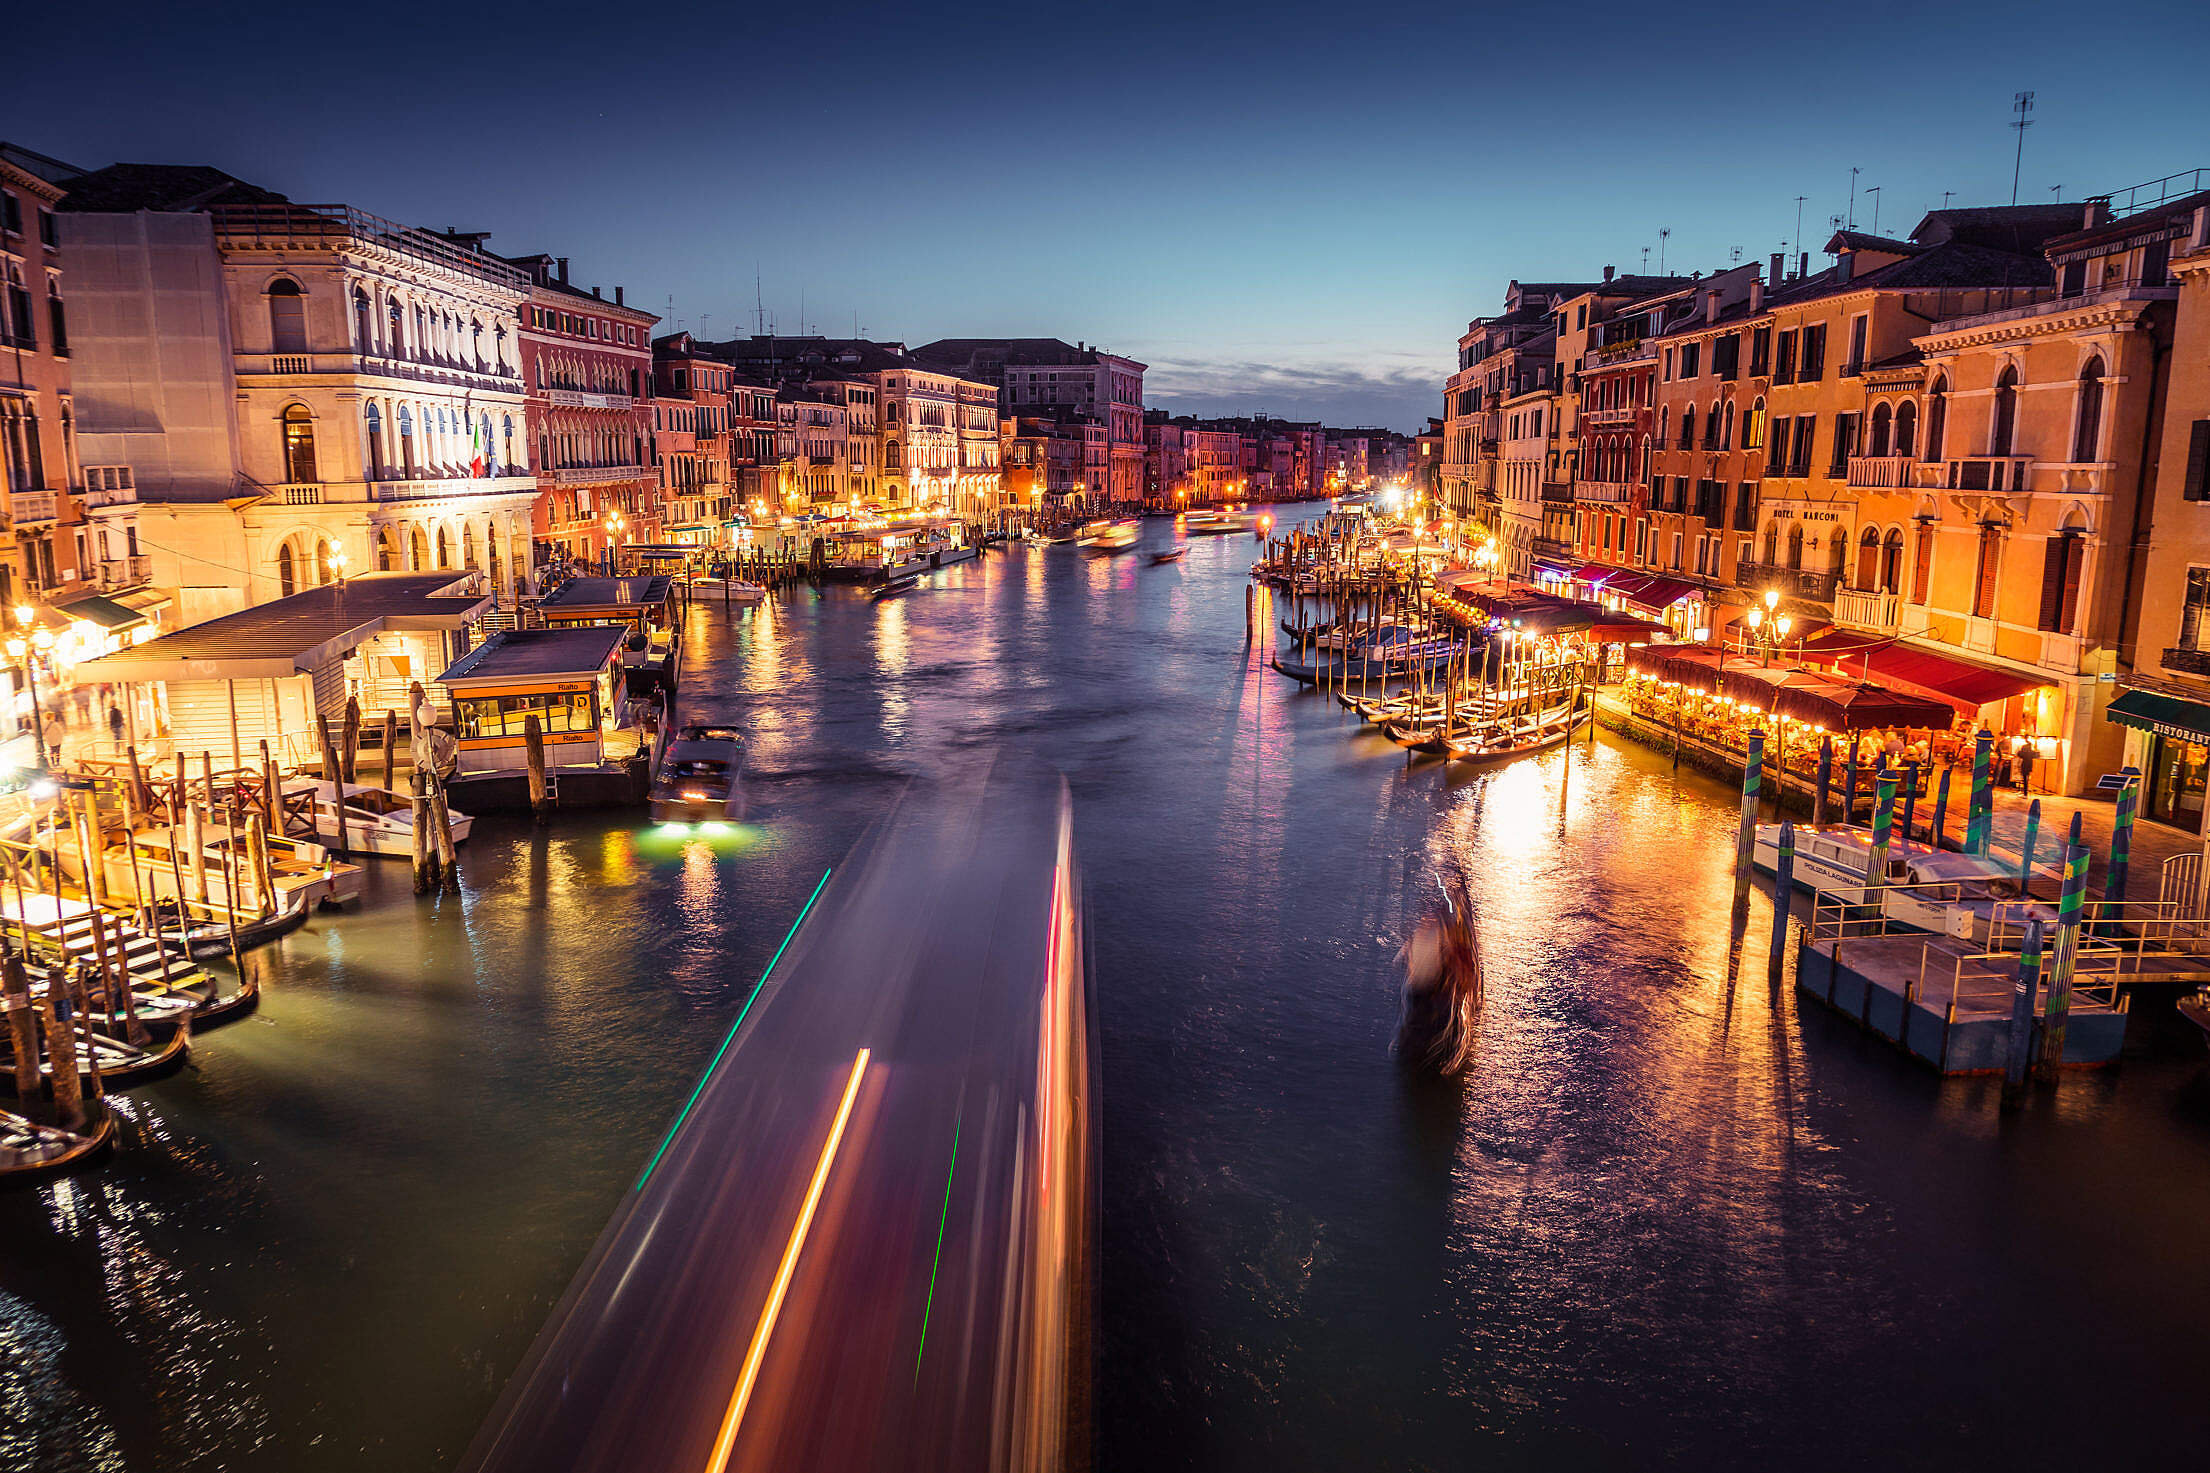 venice-canal-grande-at-night-2210x1473[1].jpg